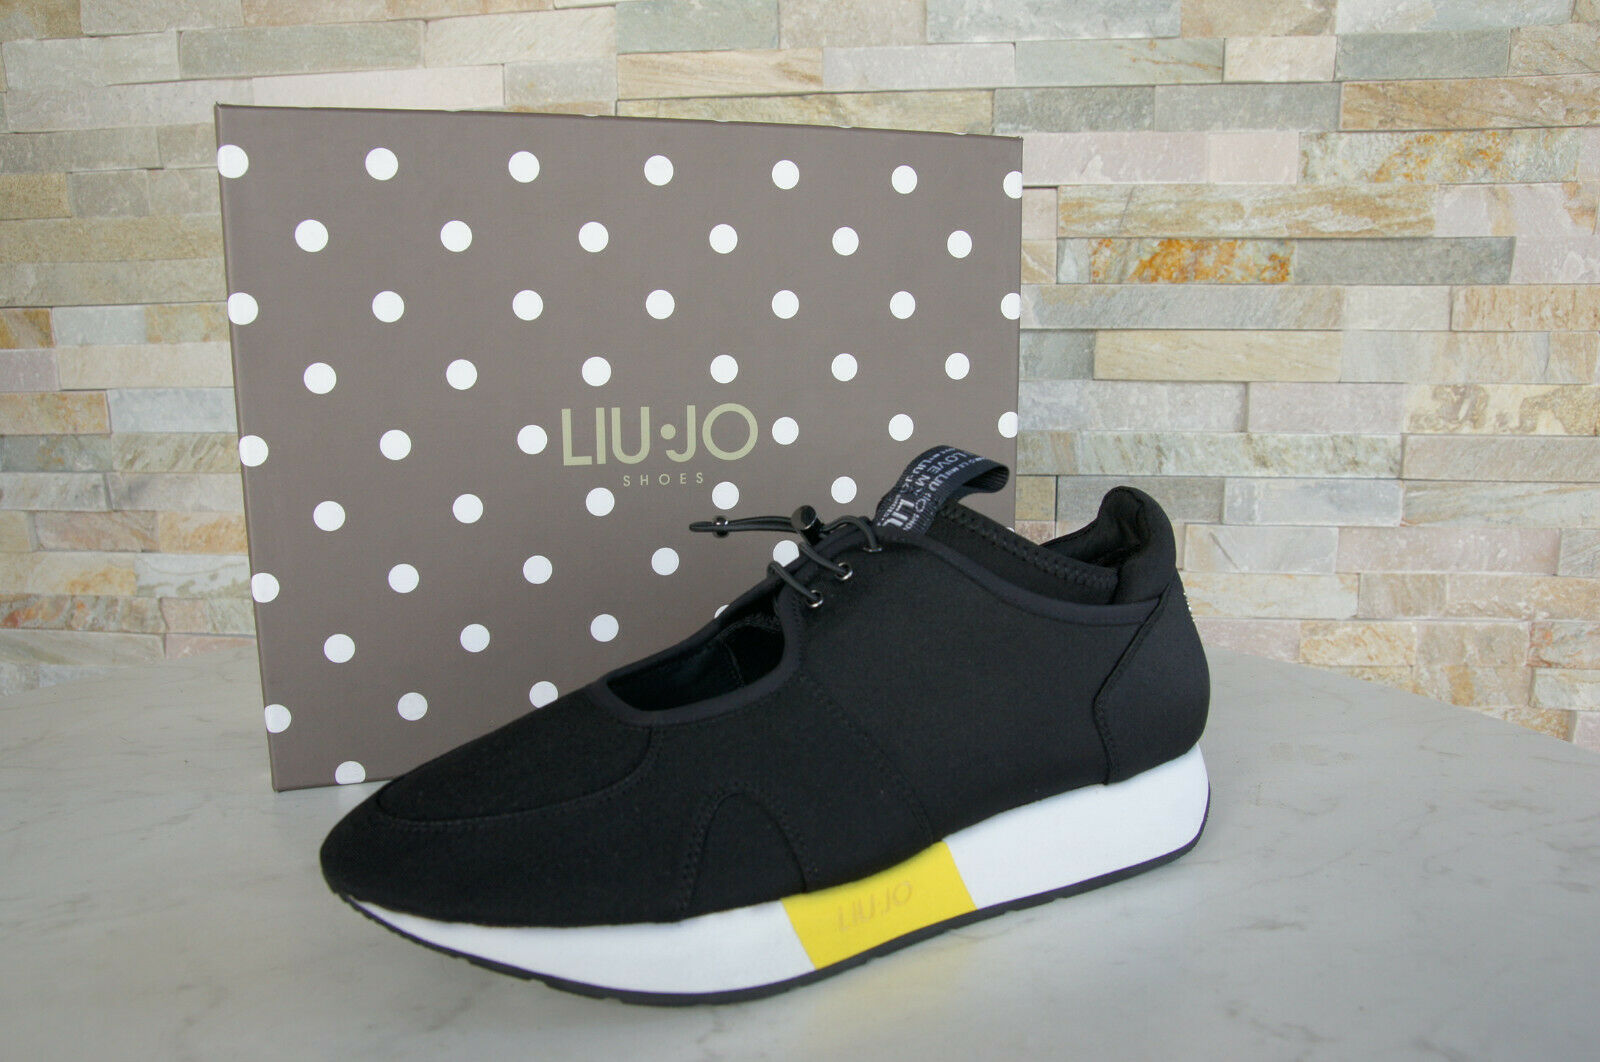 Liu Jo Size 41 Sneakers Low shoes Slip on shoes May Black New Previously